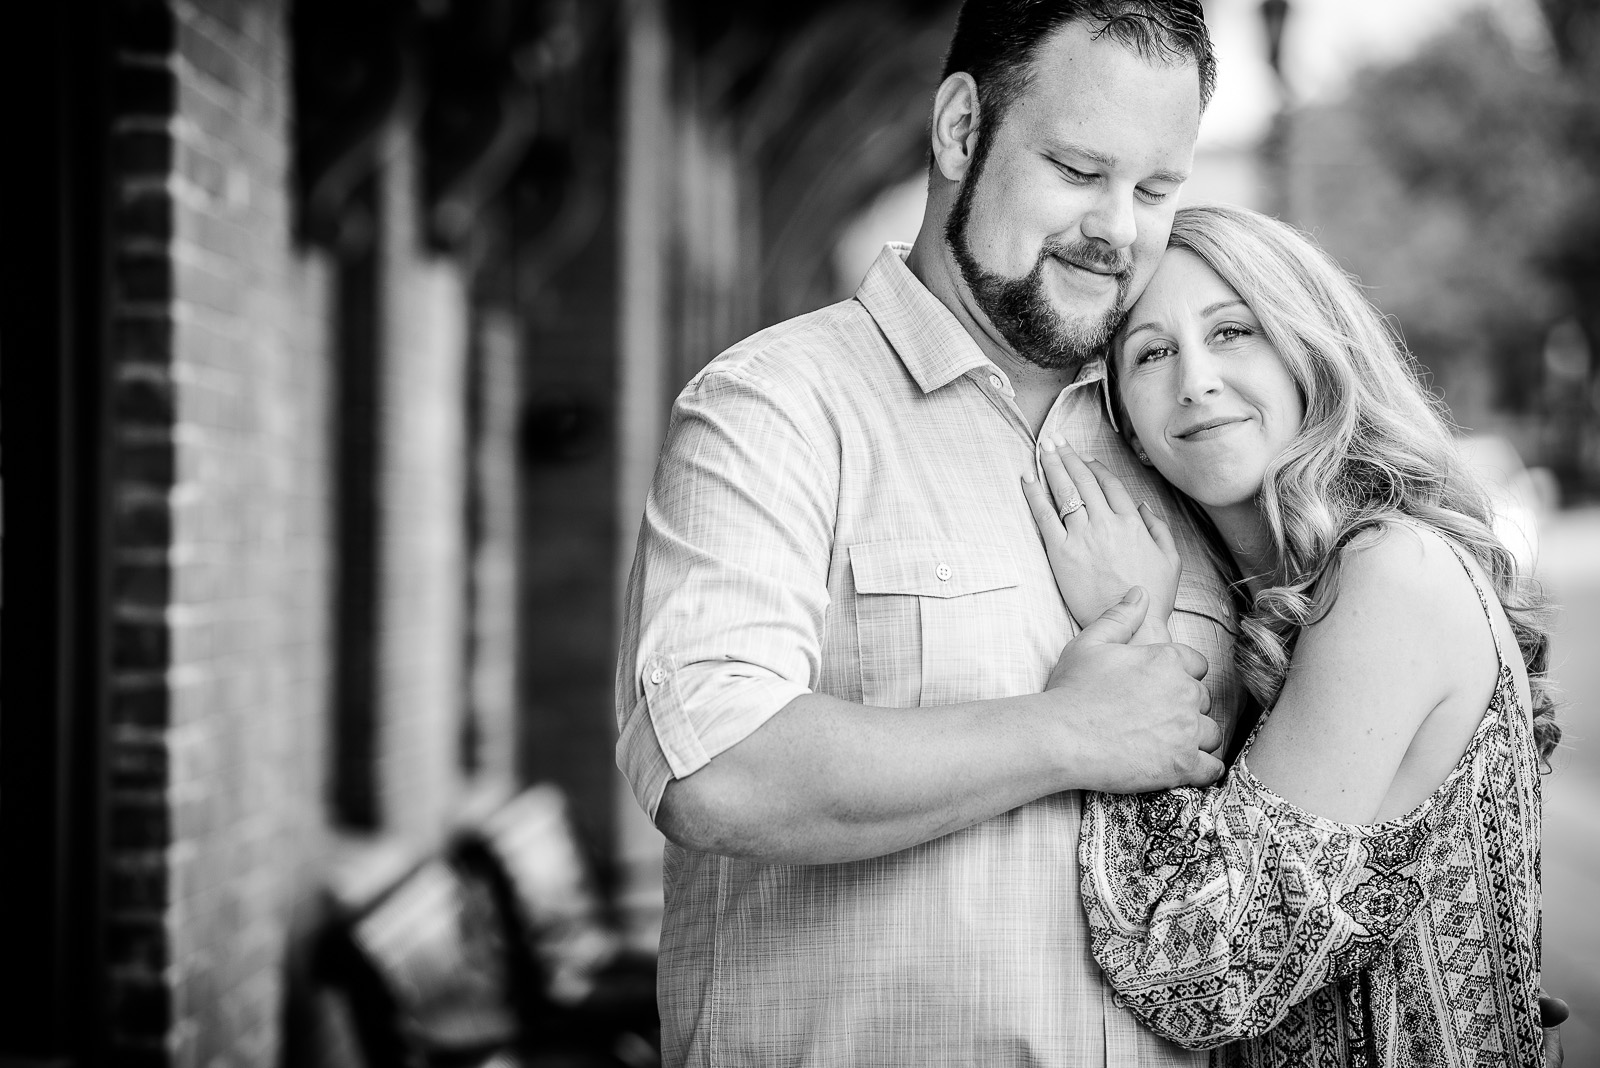 Eric_and_Christy_Photography_Blog_2017_Best_Engagement-23